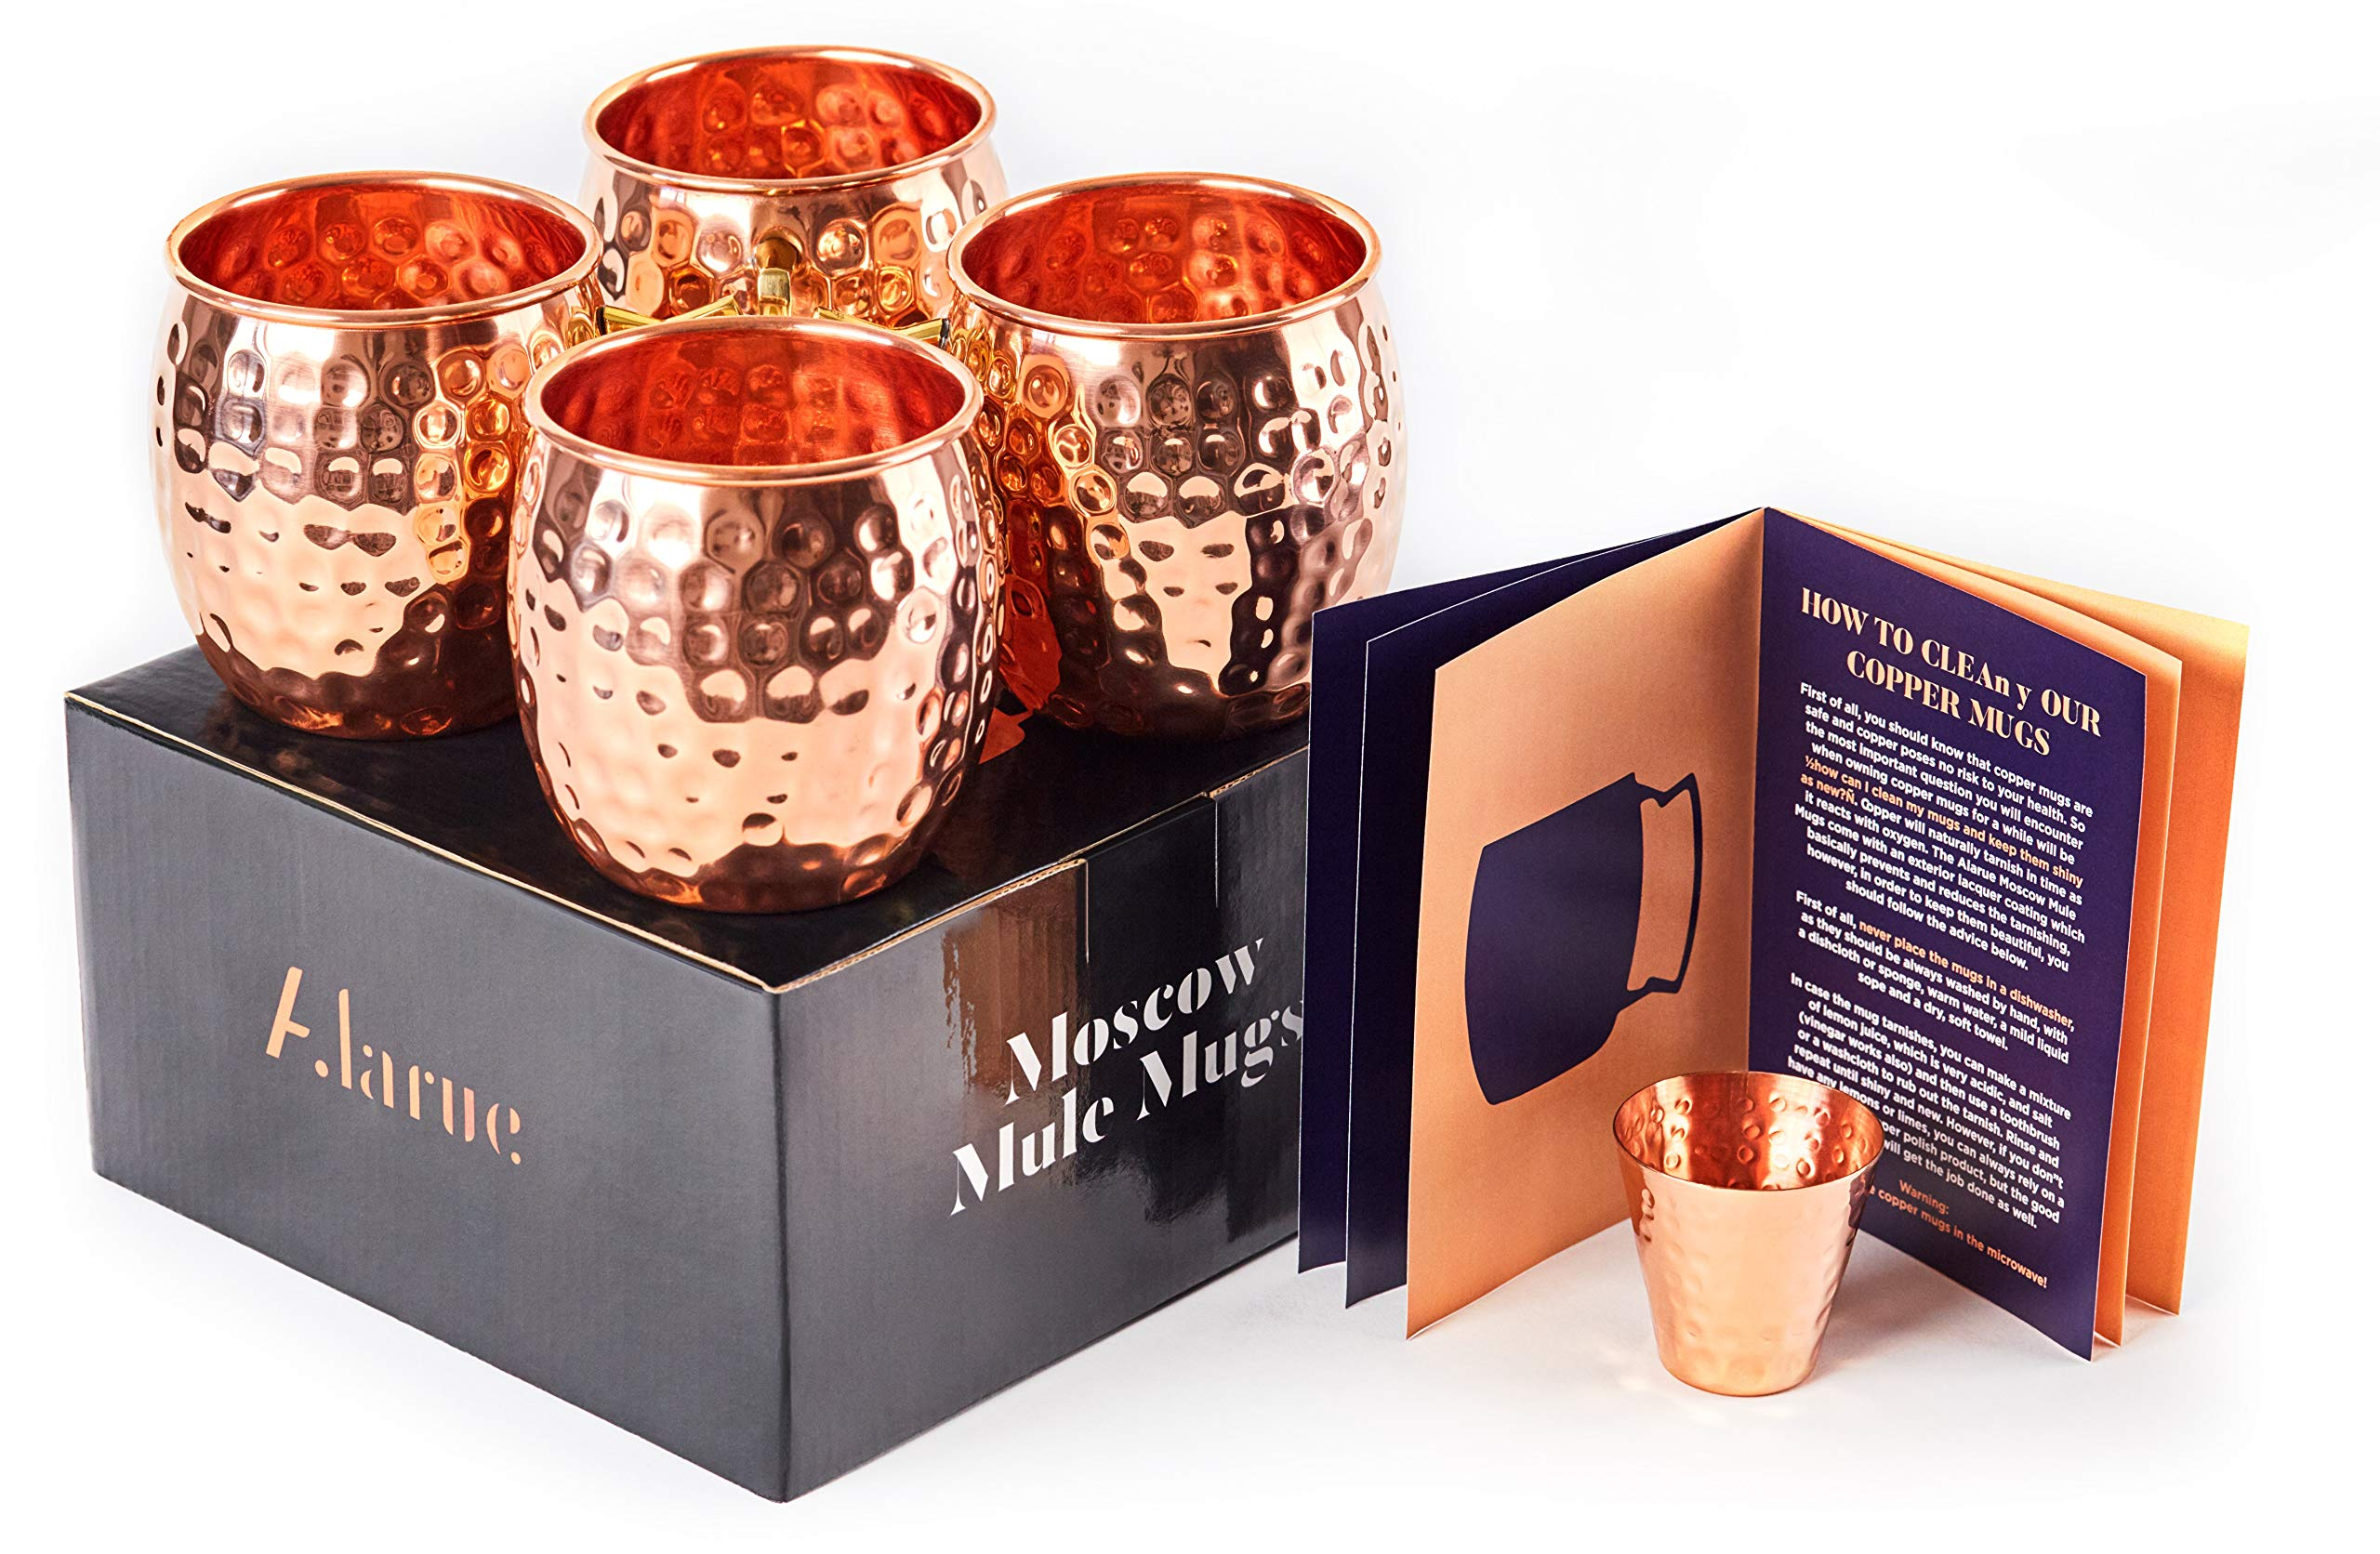 Moscow Mule Copper Mugs Set - 4 Authentic Handcrafted Mugs (16 oz.) with Shot Glass (2 oz.) - Food Safe Pure Solid Copper Mugs - Gift set with Recipe Book Included by ALARUE